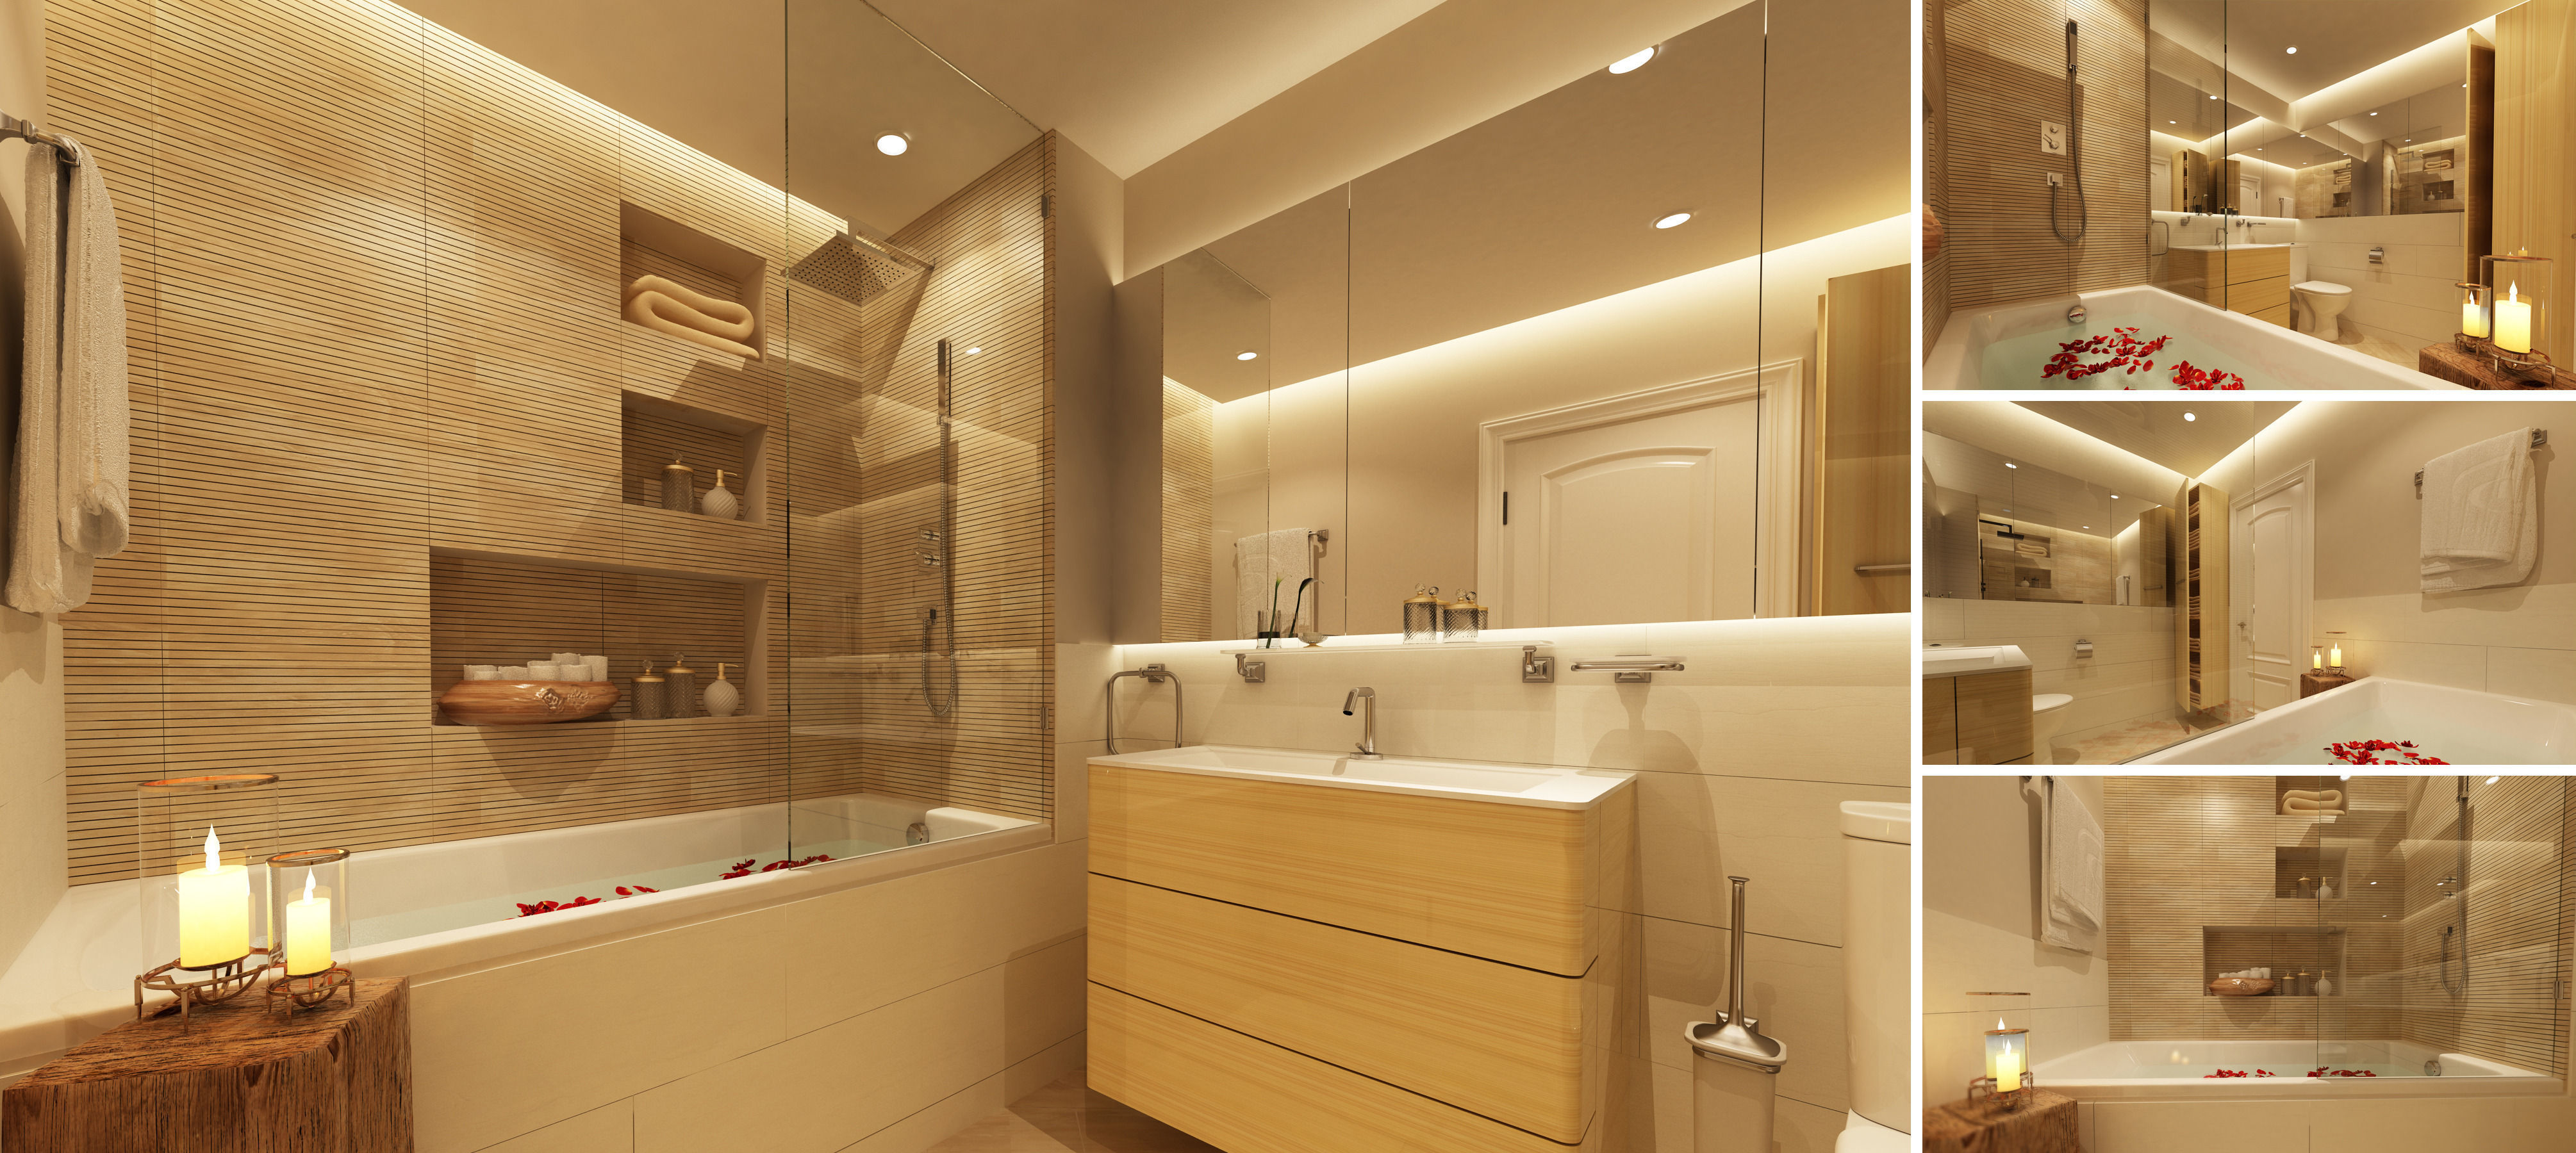 Master bathroom 3d model max for Bathroom models photos